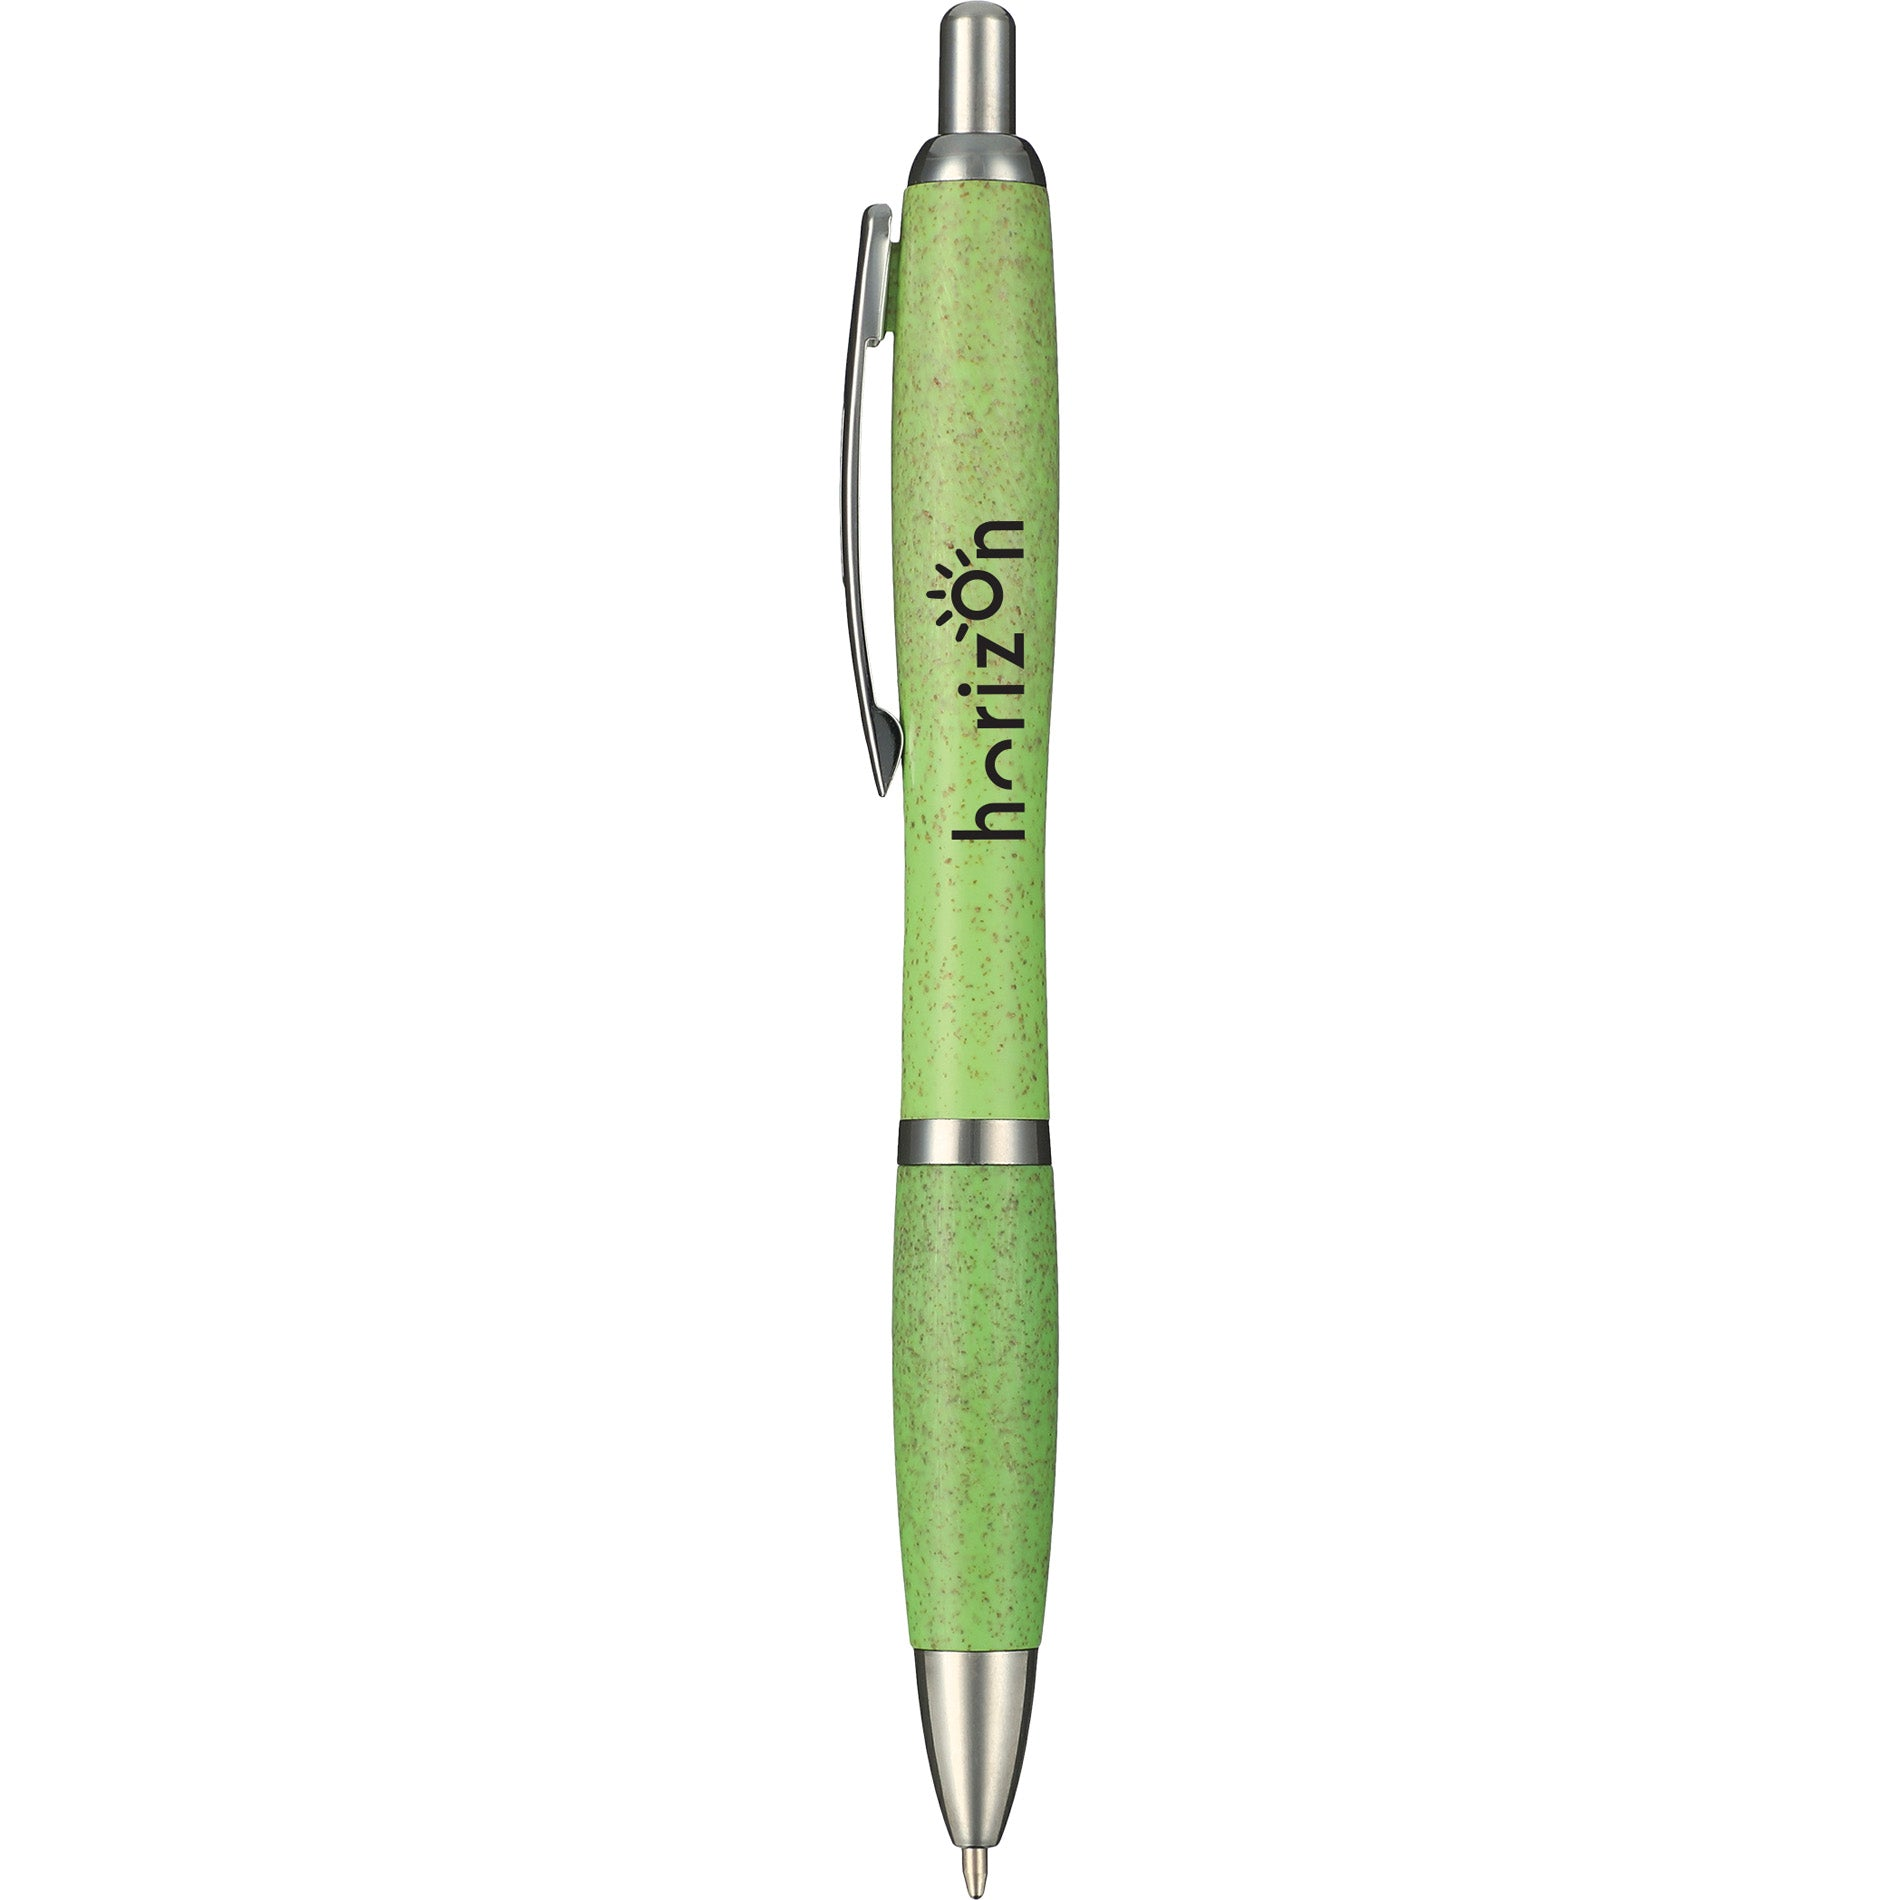 BULLET NASH WHEAT STRAW BALLPOINT PEN